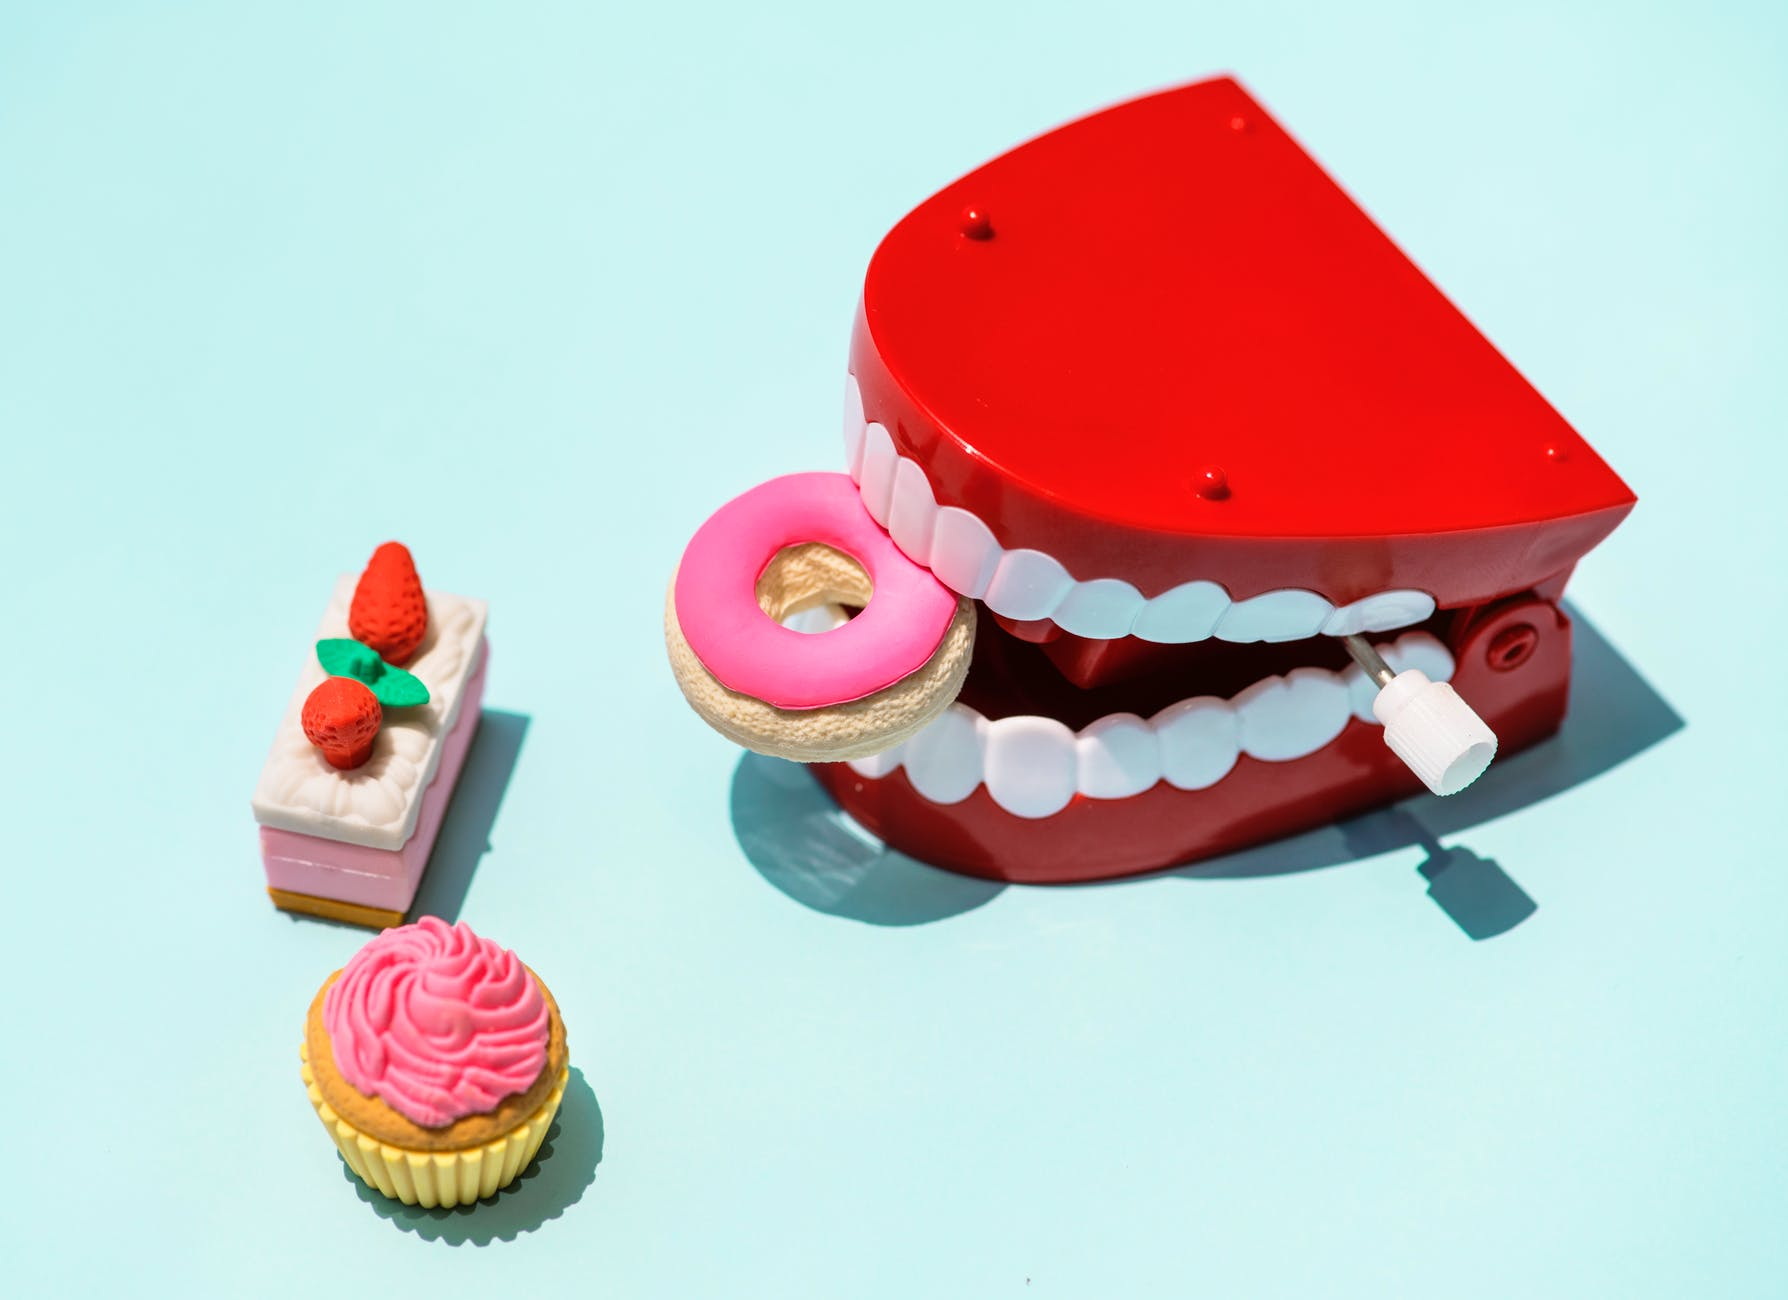 red and white mouth plastic toy and food plastic toys